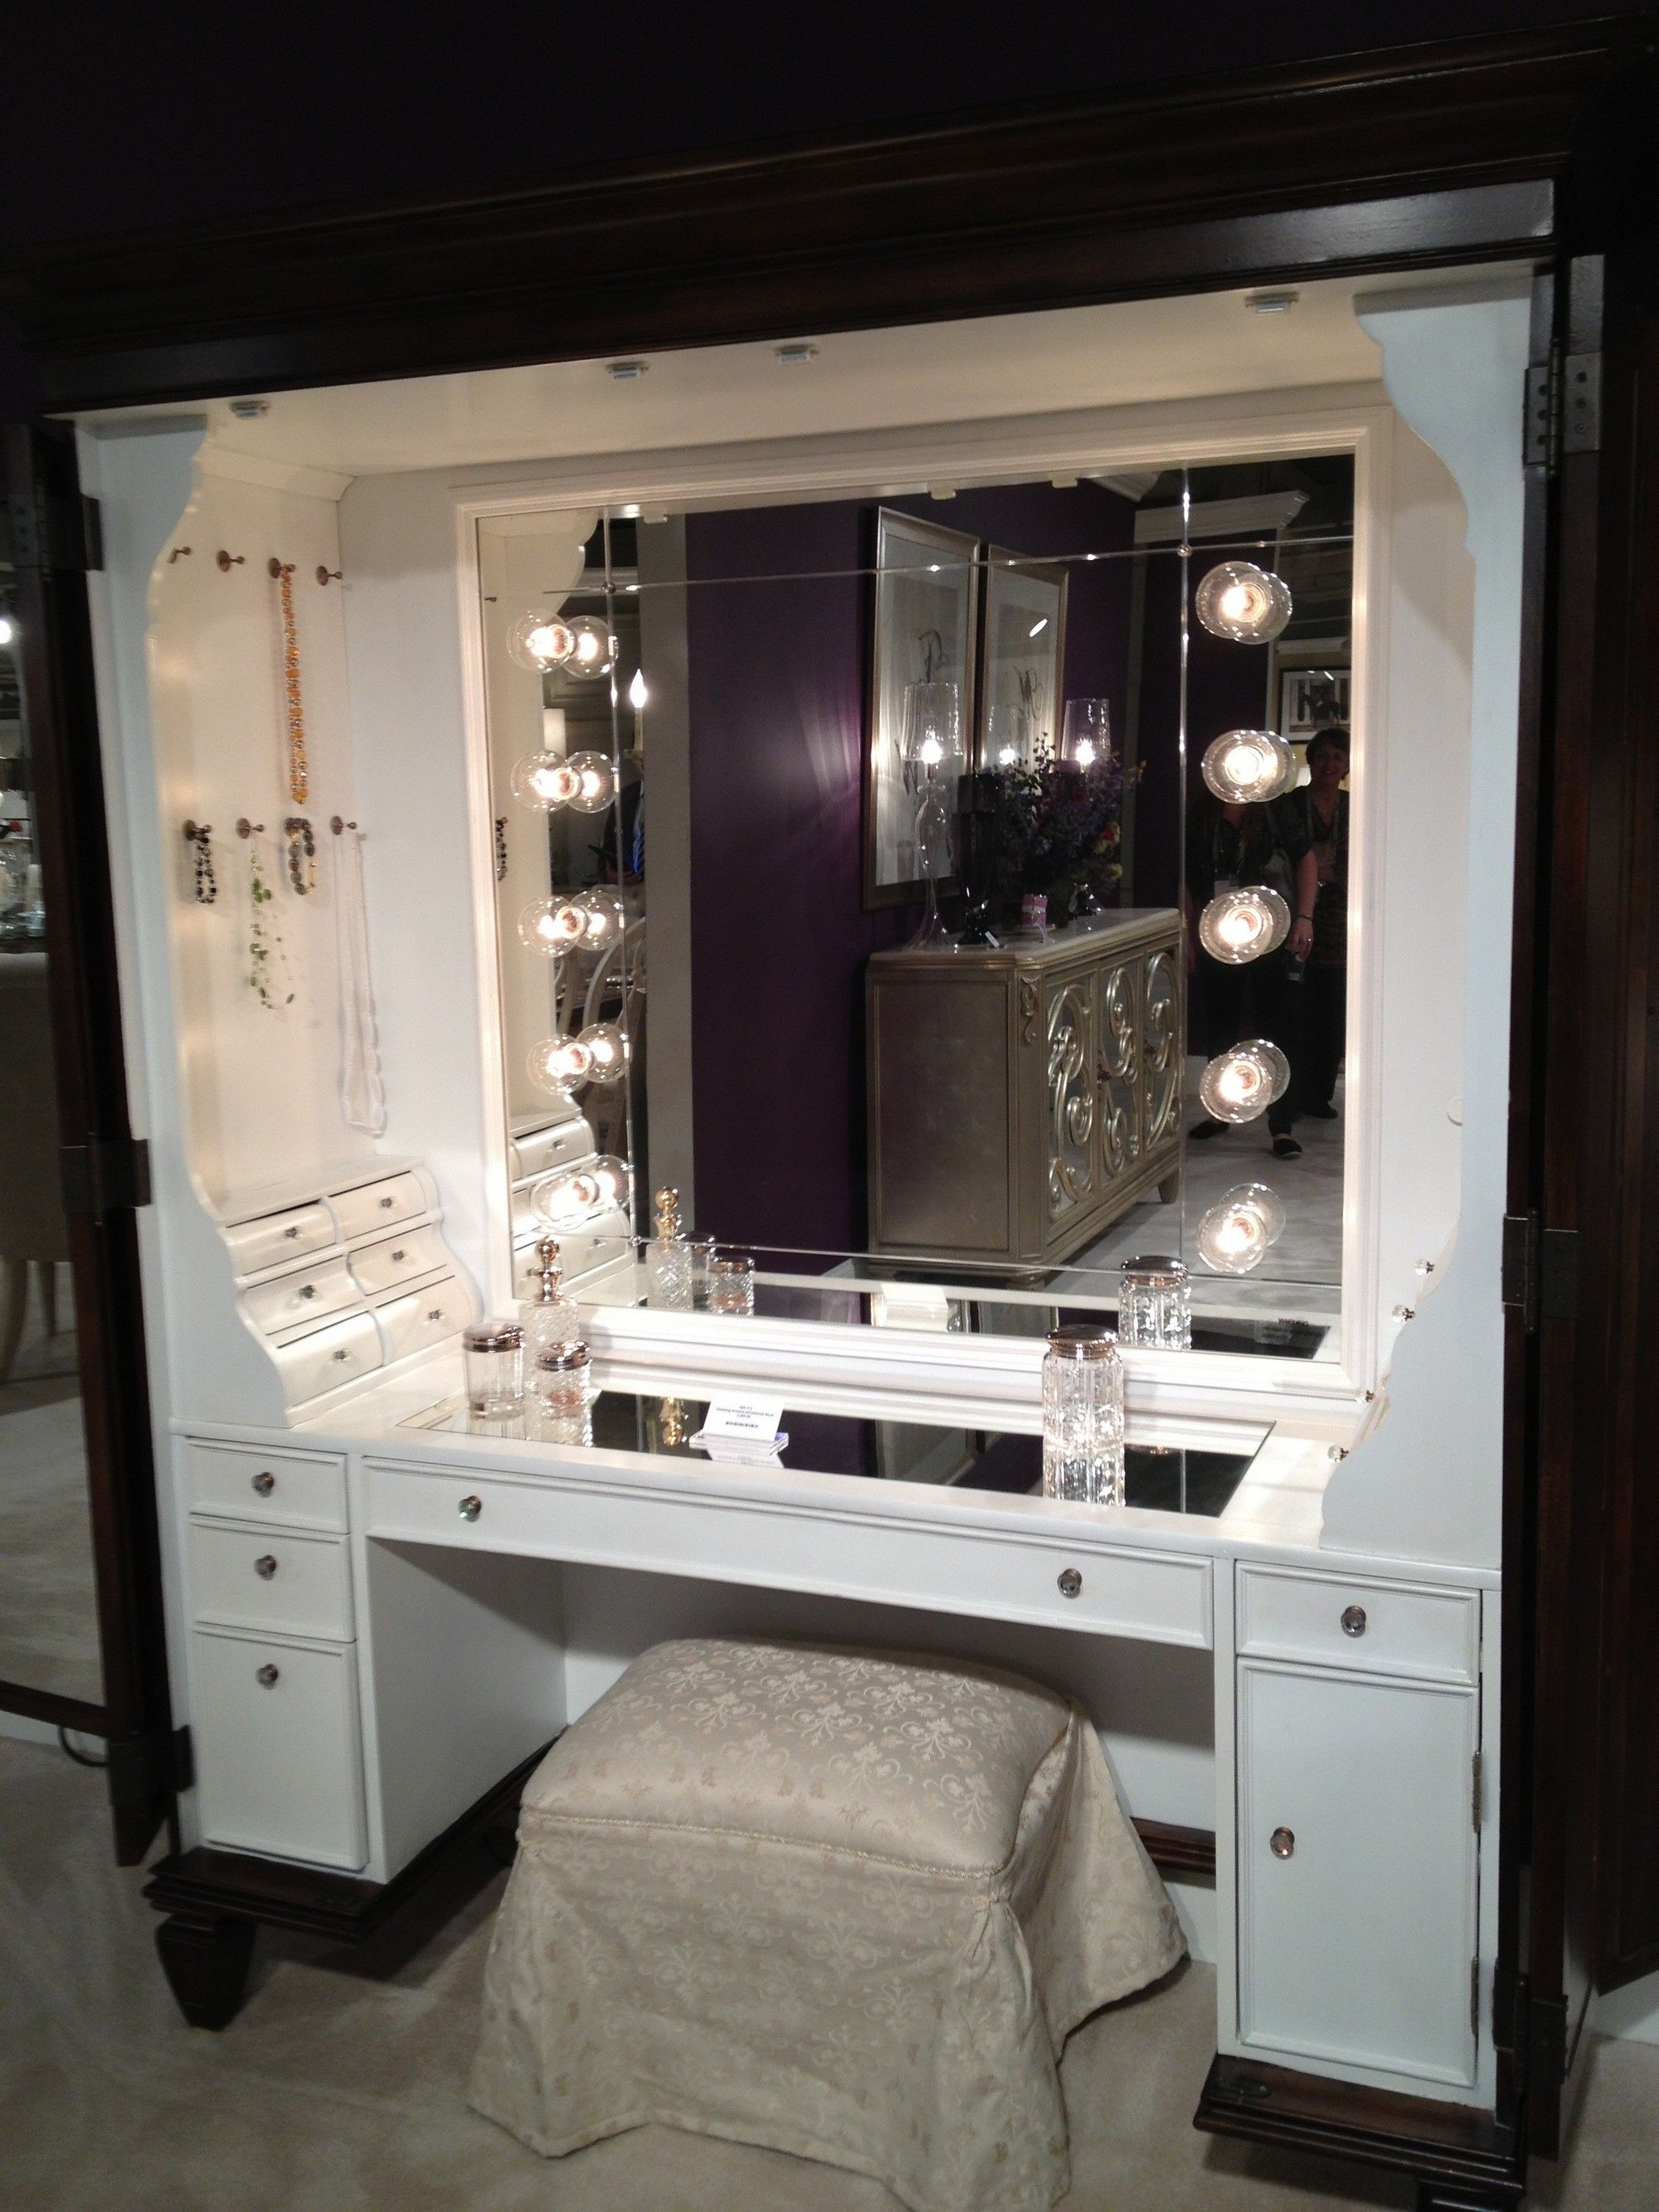 mirrored broadway mutable also makeup ikea as mirr zq bedroom champagne hollywood lighted impressions plus diy vanity mirror wells table touch g dimmable preferential with girl charming lights led masterly mi